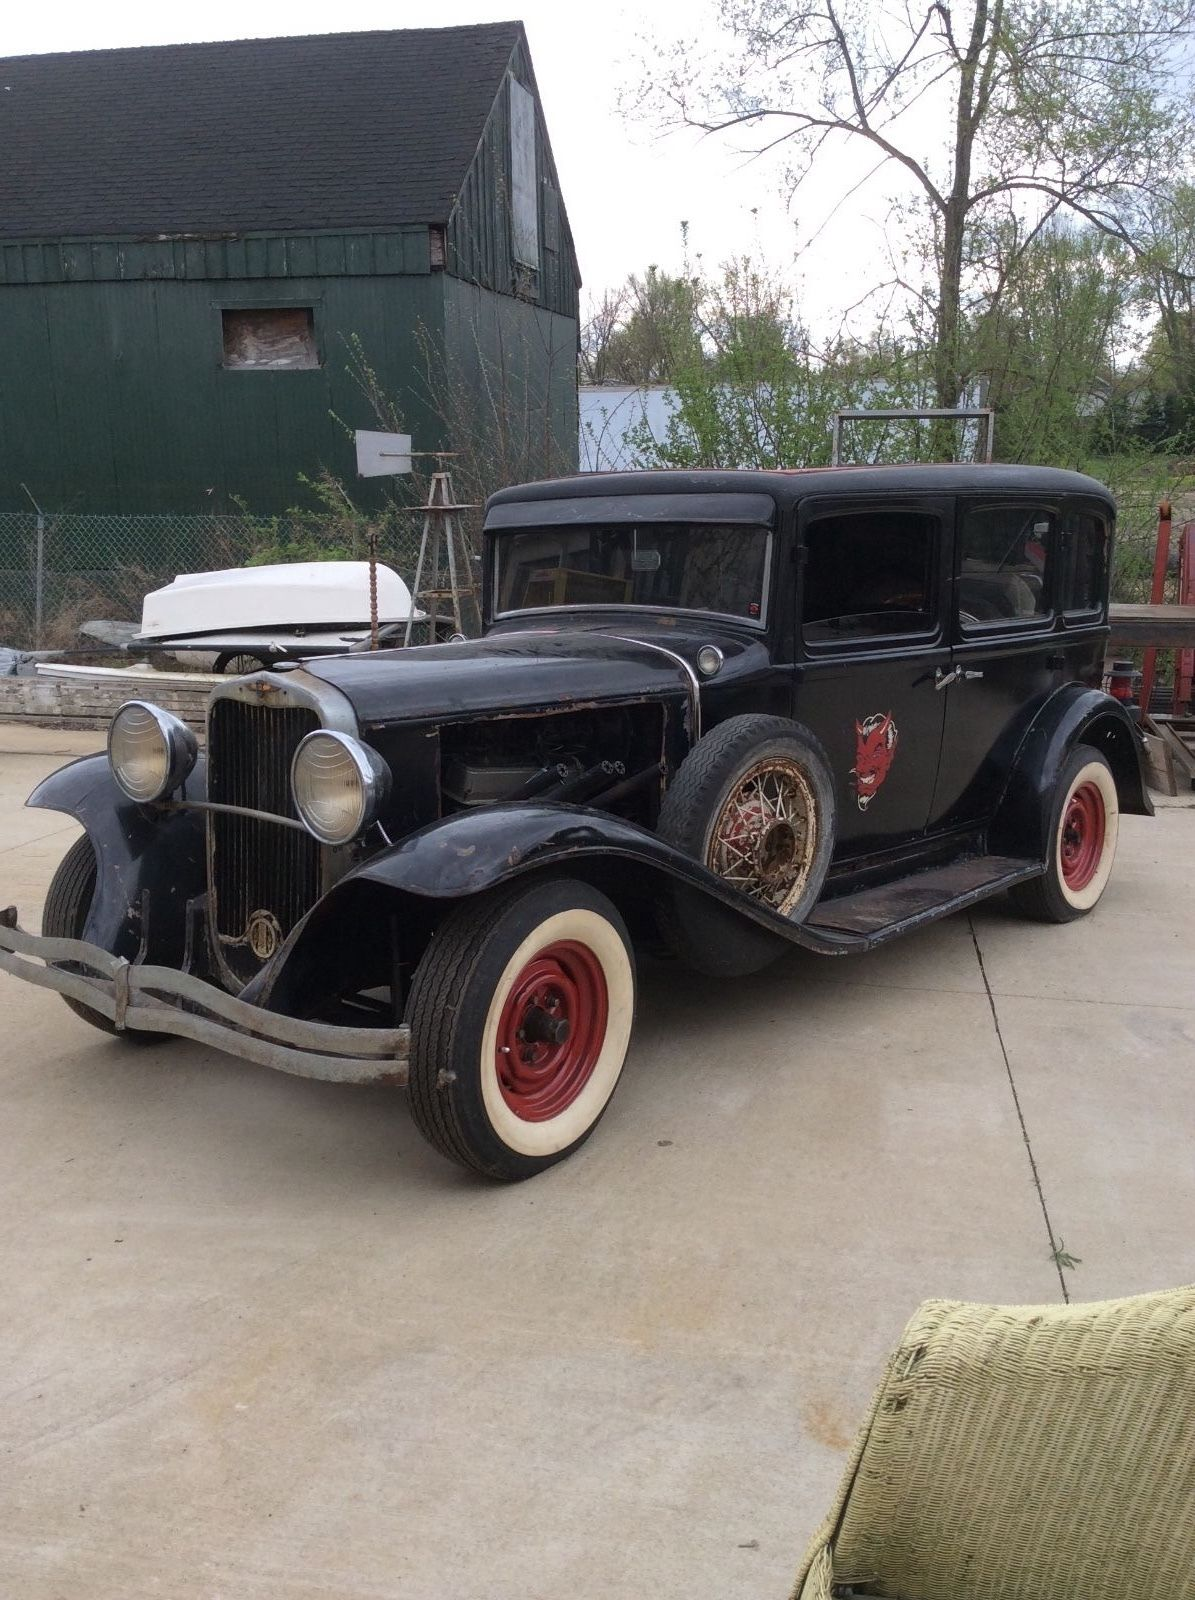 Listing All Cars For Sale >> 1931 Dodge DB8 project for sale